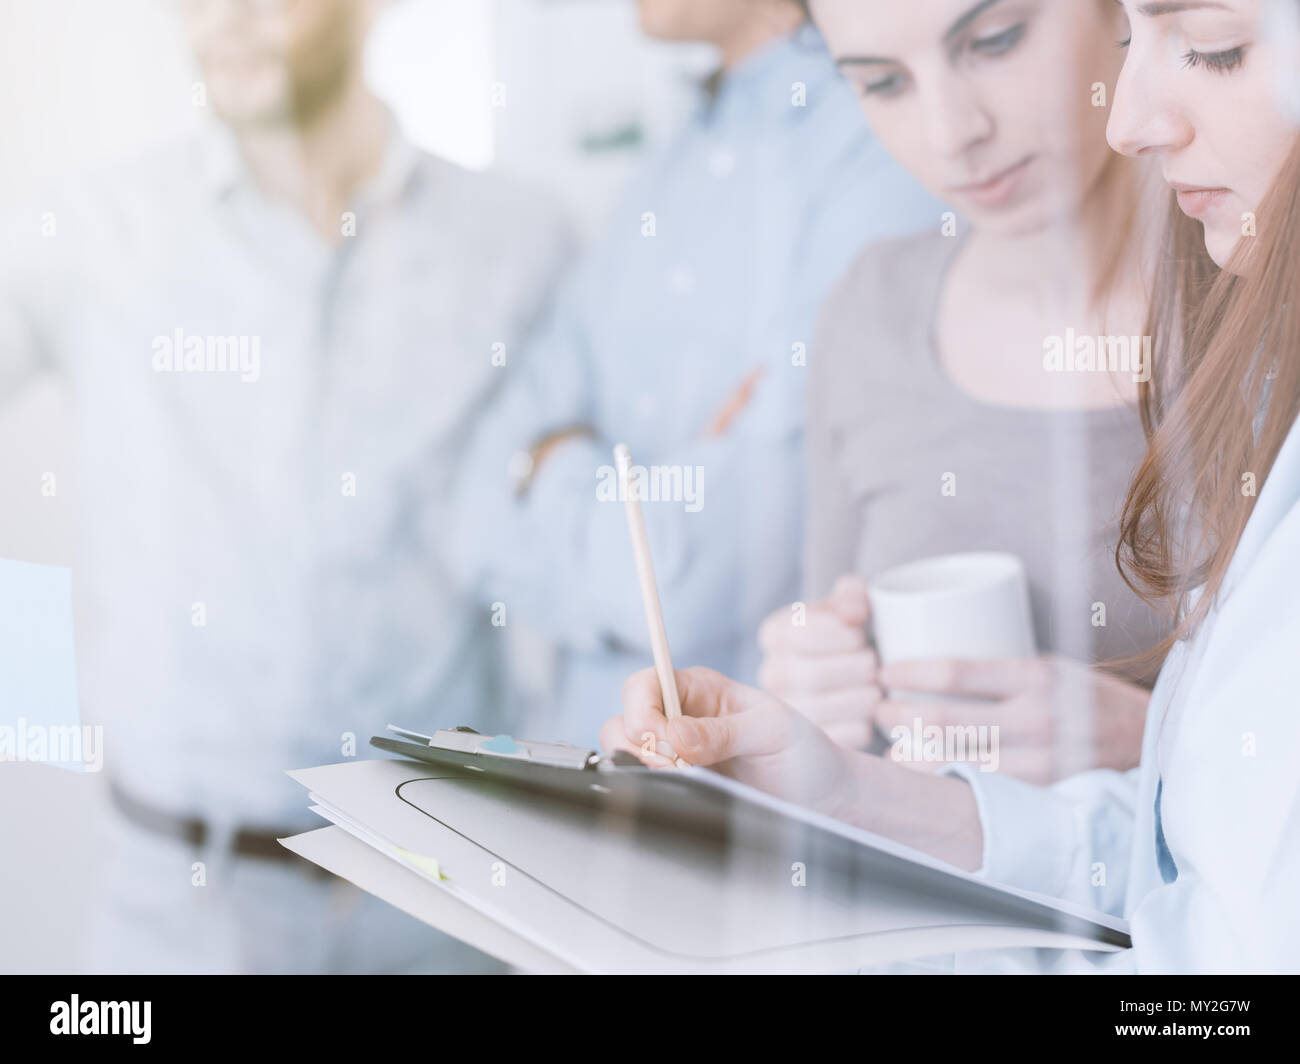 Young business team working in the office, two women on the foreground are checking paperwork on a clipboard - Stock Image